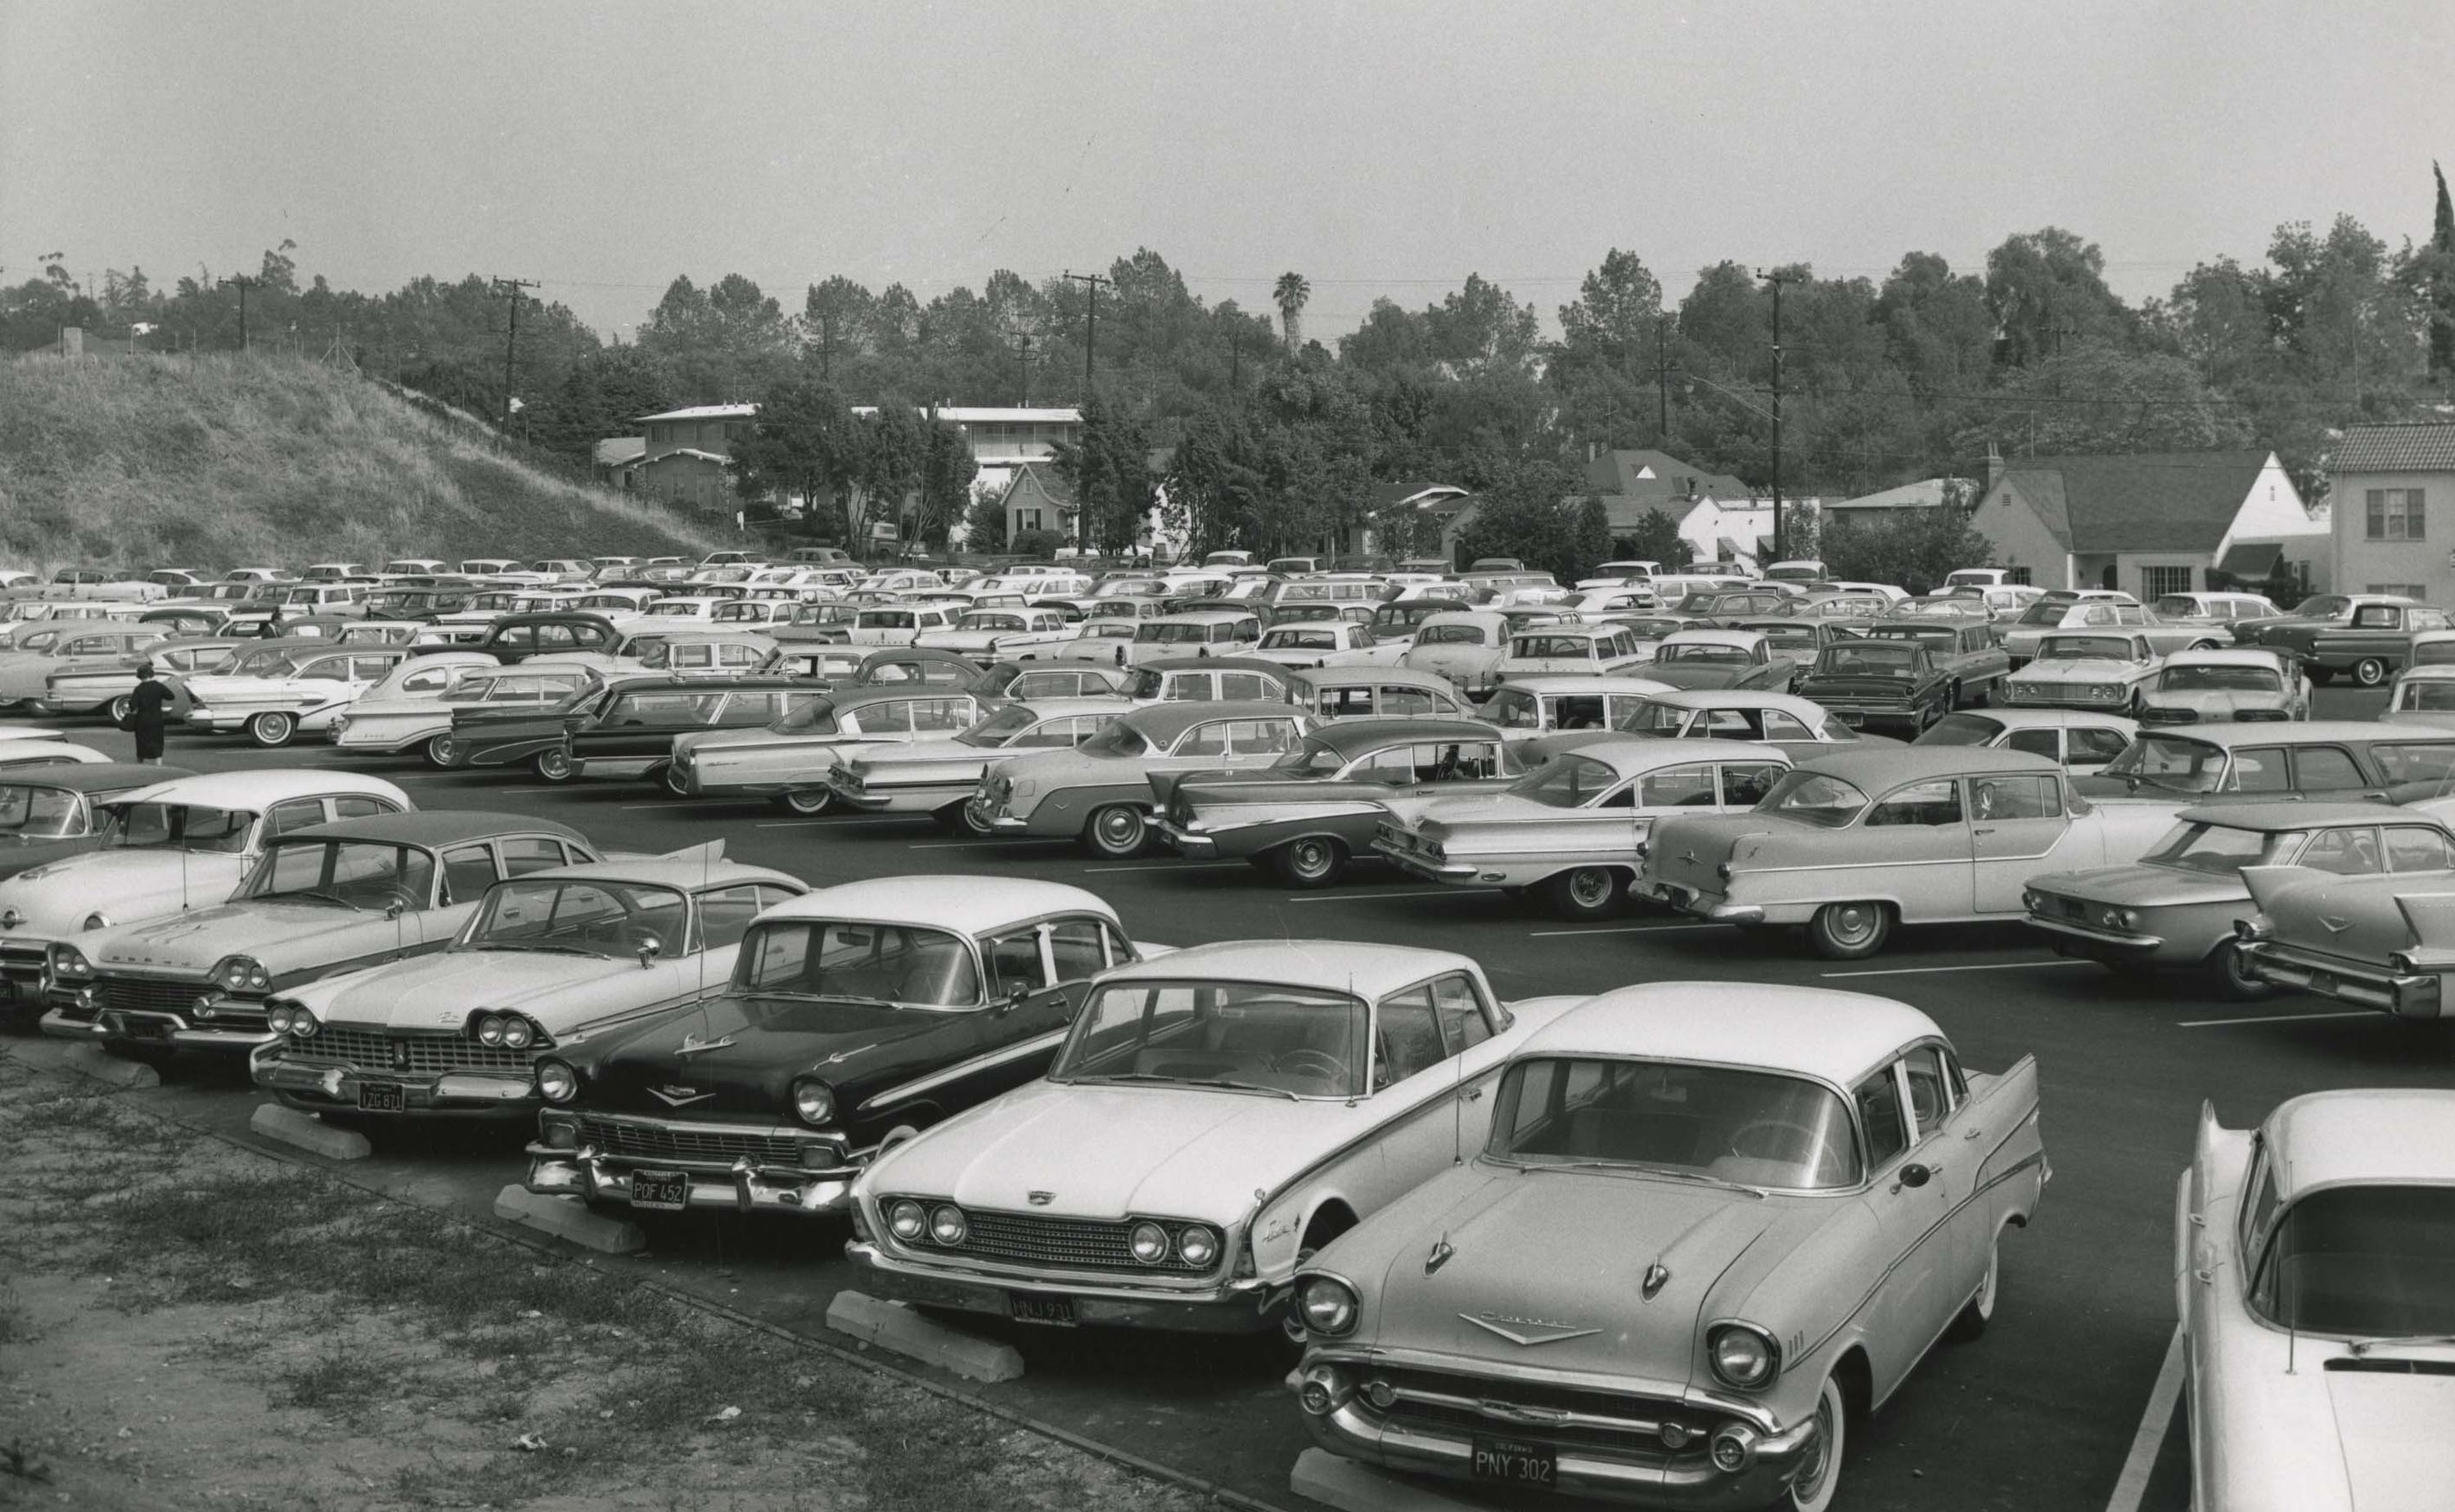 Whittier, CA, 1963. | The cars... | Pinterest | Cars, Move car and ...